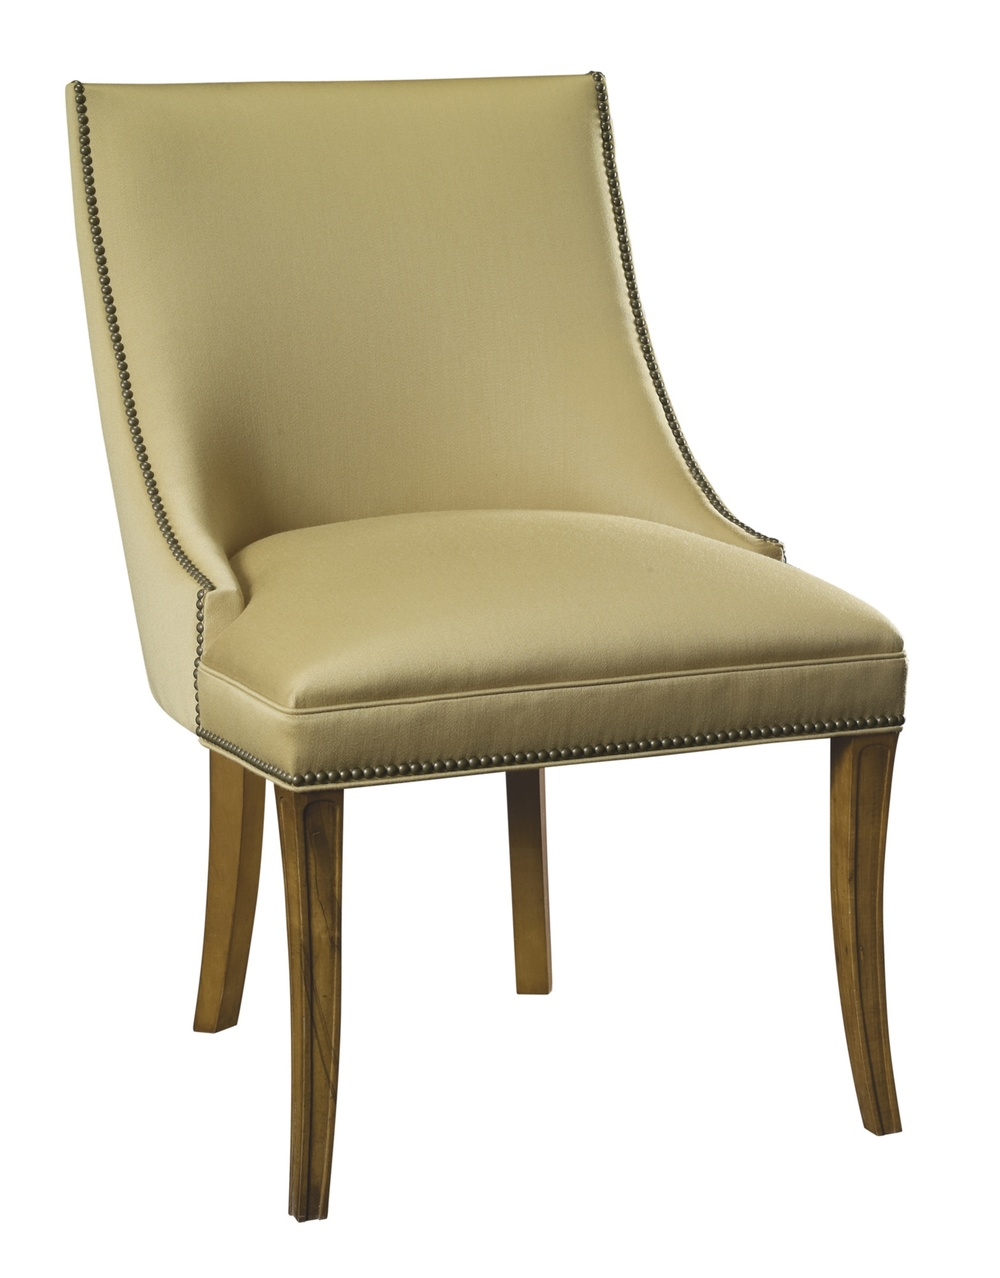 Hickory Chair - Hunt Chair